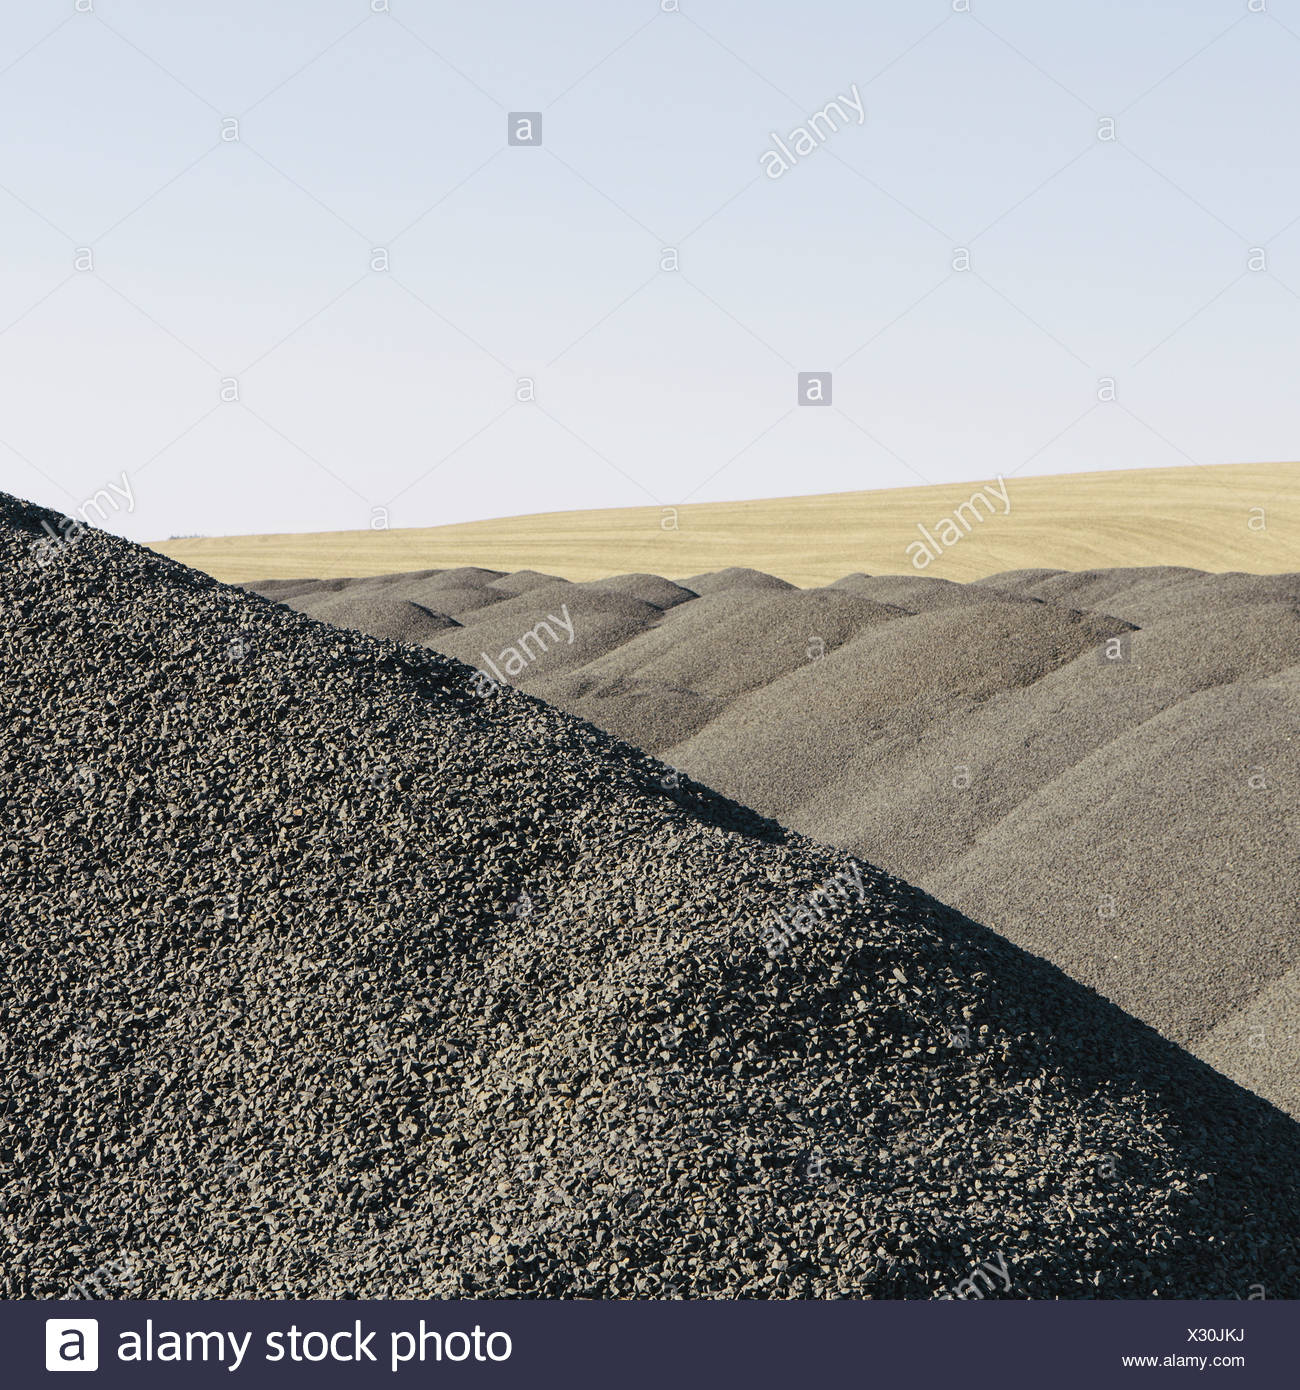 Gravel piles used for road maintenance and construction a row of heaps near Pullman Washington USA Stock Photo